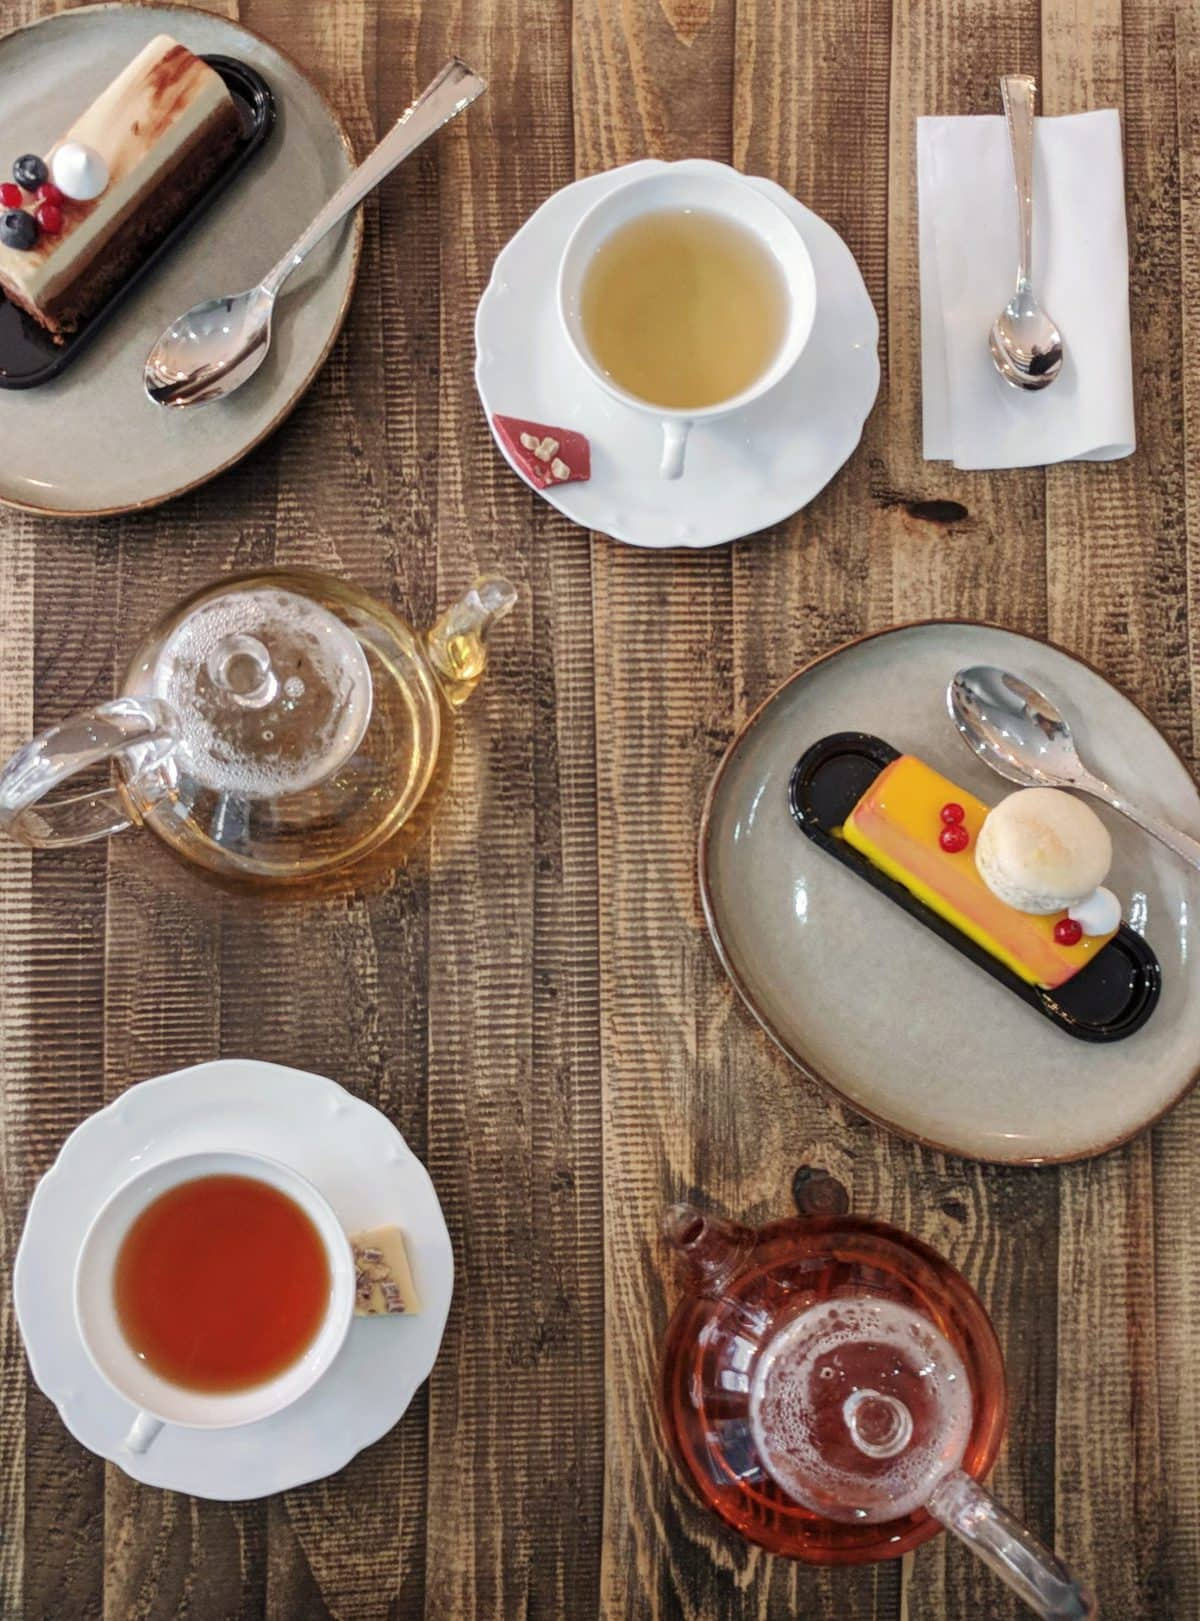 Flatlay of tea and cakes